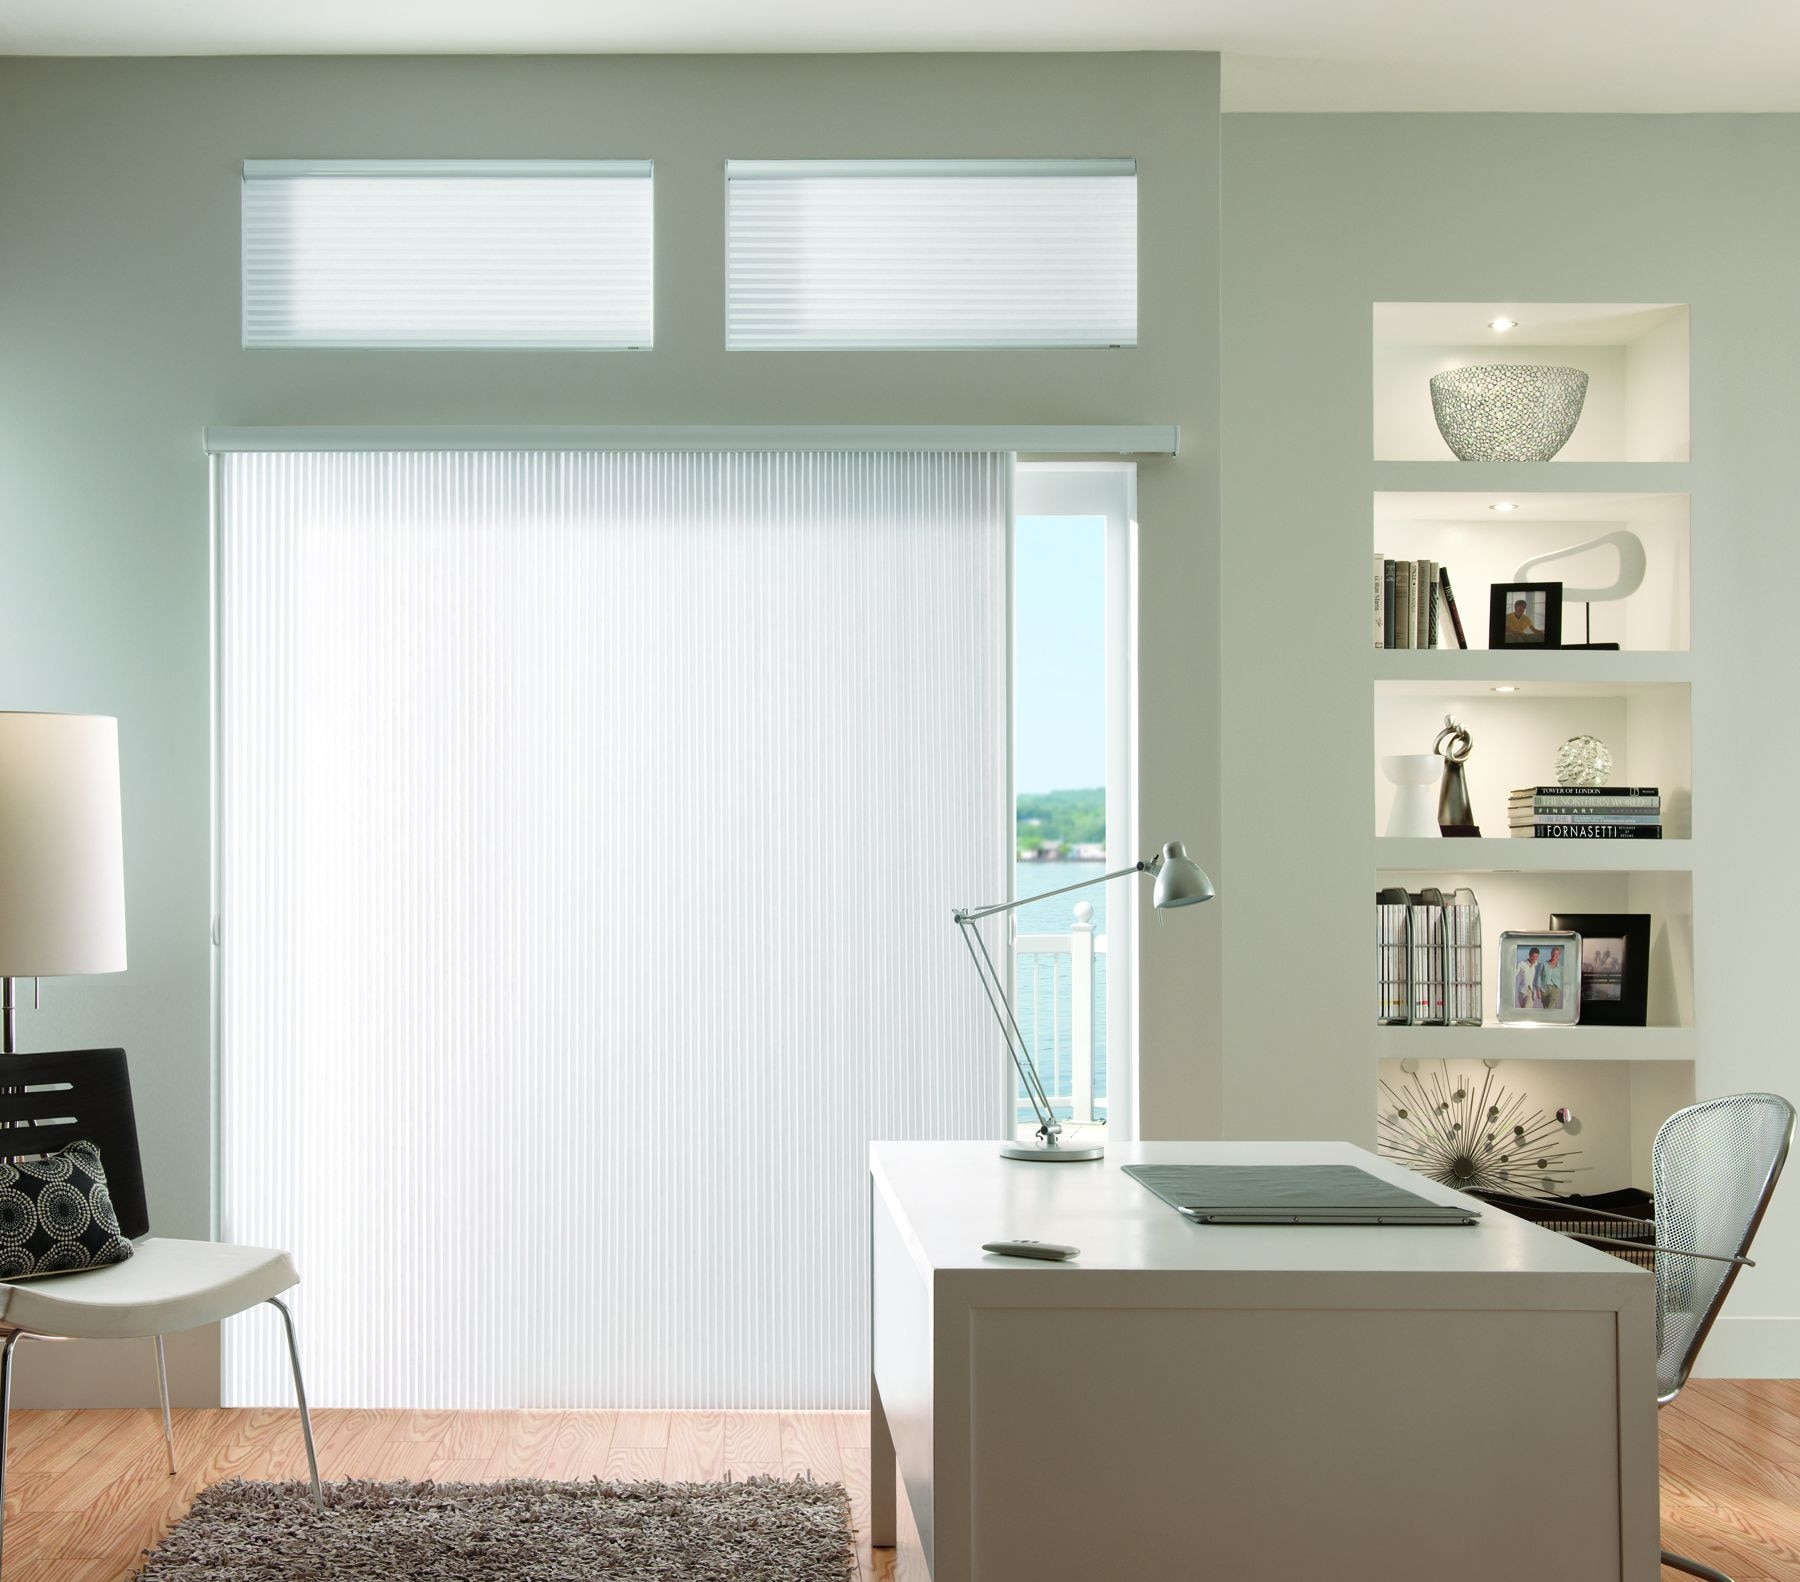 VertiCell Shades Provide A Stylish Way To Insulate Wide Windows And Patio  Doors.